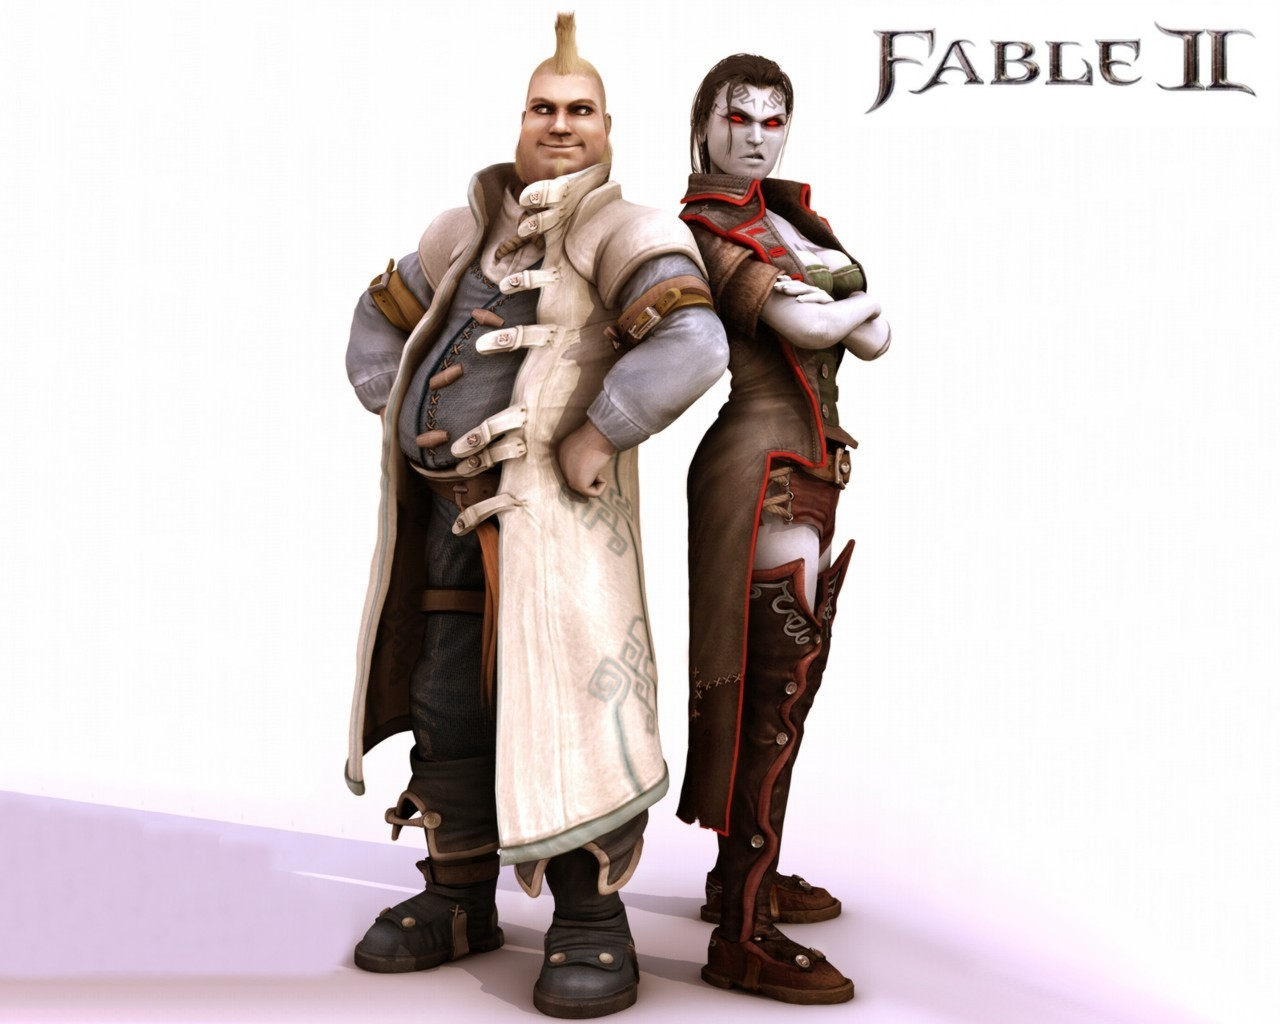 Fable 2 rose henti xxx videos